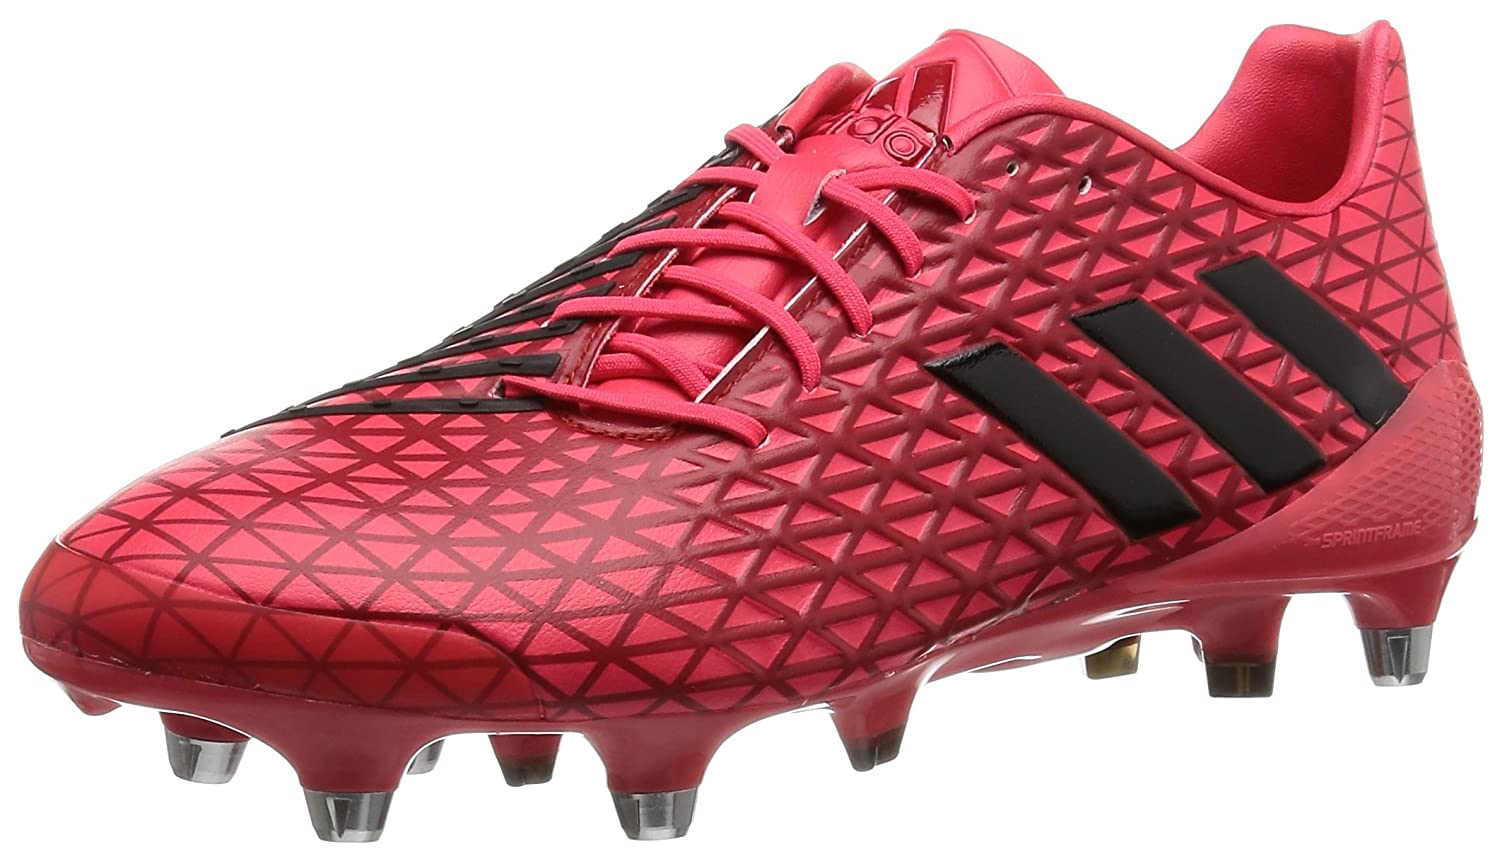 38d320b43fa adidas Men s Predator Malice Sg Rugby Boots  Amazon.co.uk  Shoes   Bags